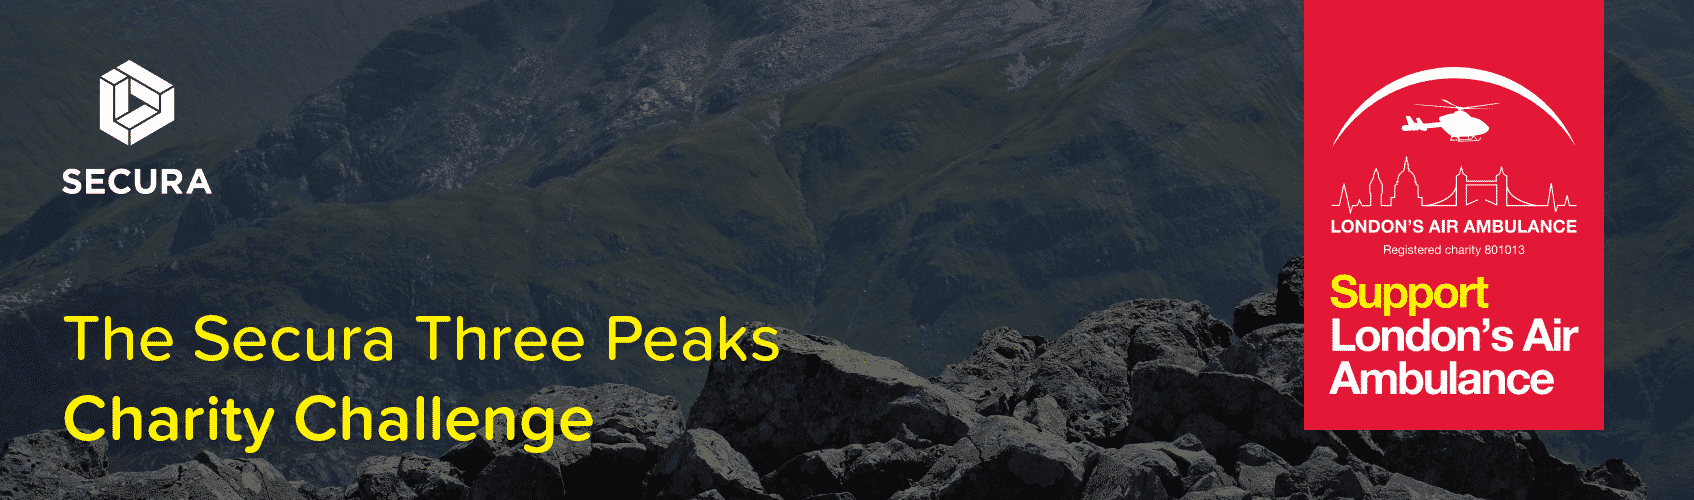 The Secura Three Peaks Charity Challenge